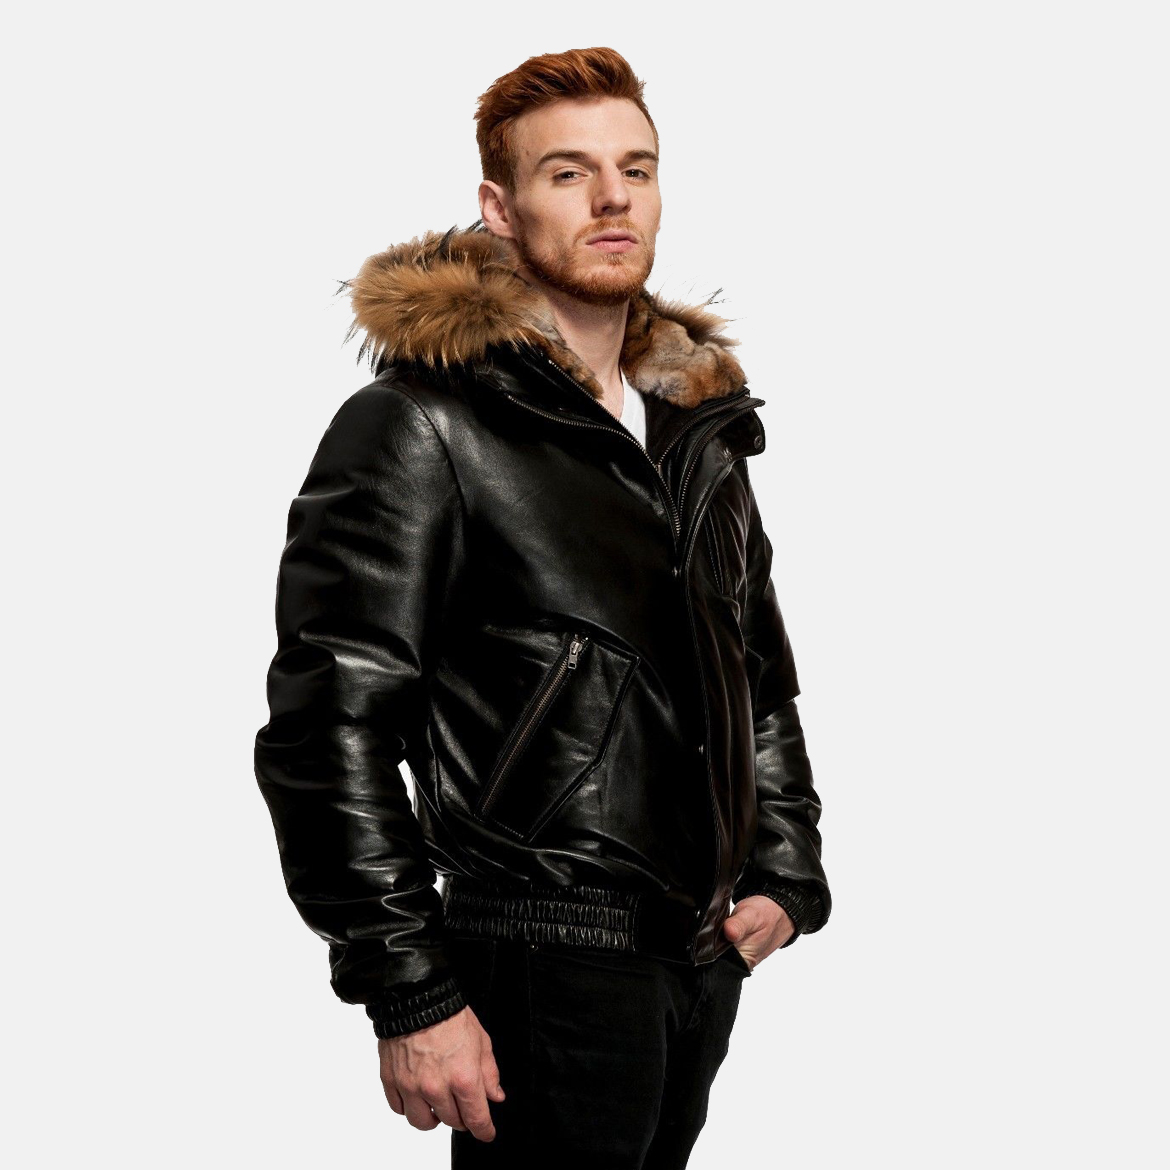 Mens Winter Coats With Fur Hoods - Tradingbasis